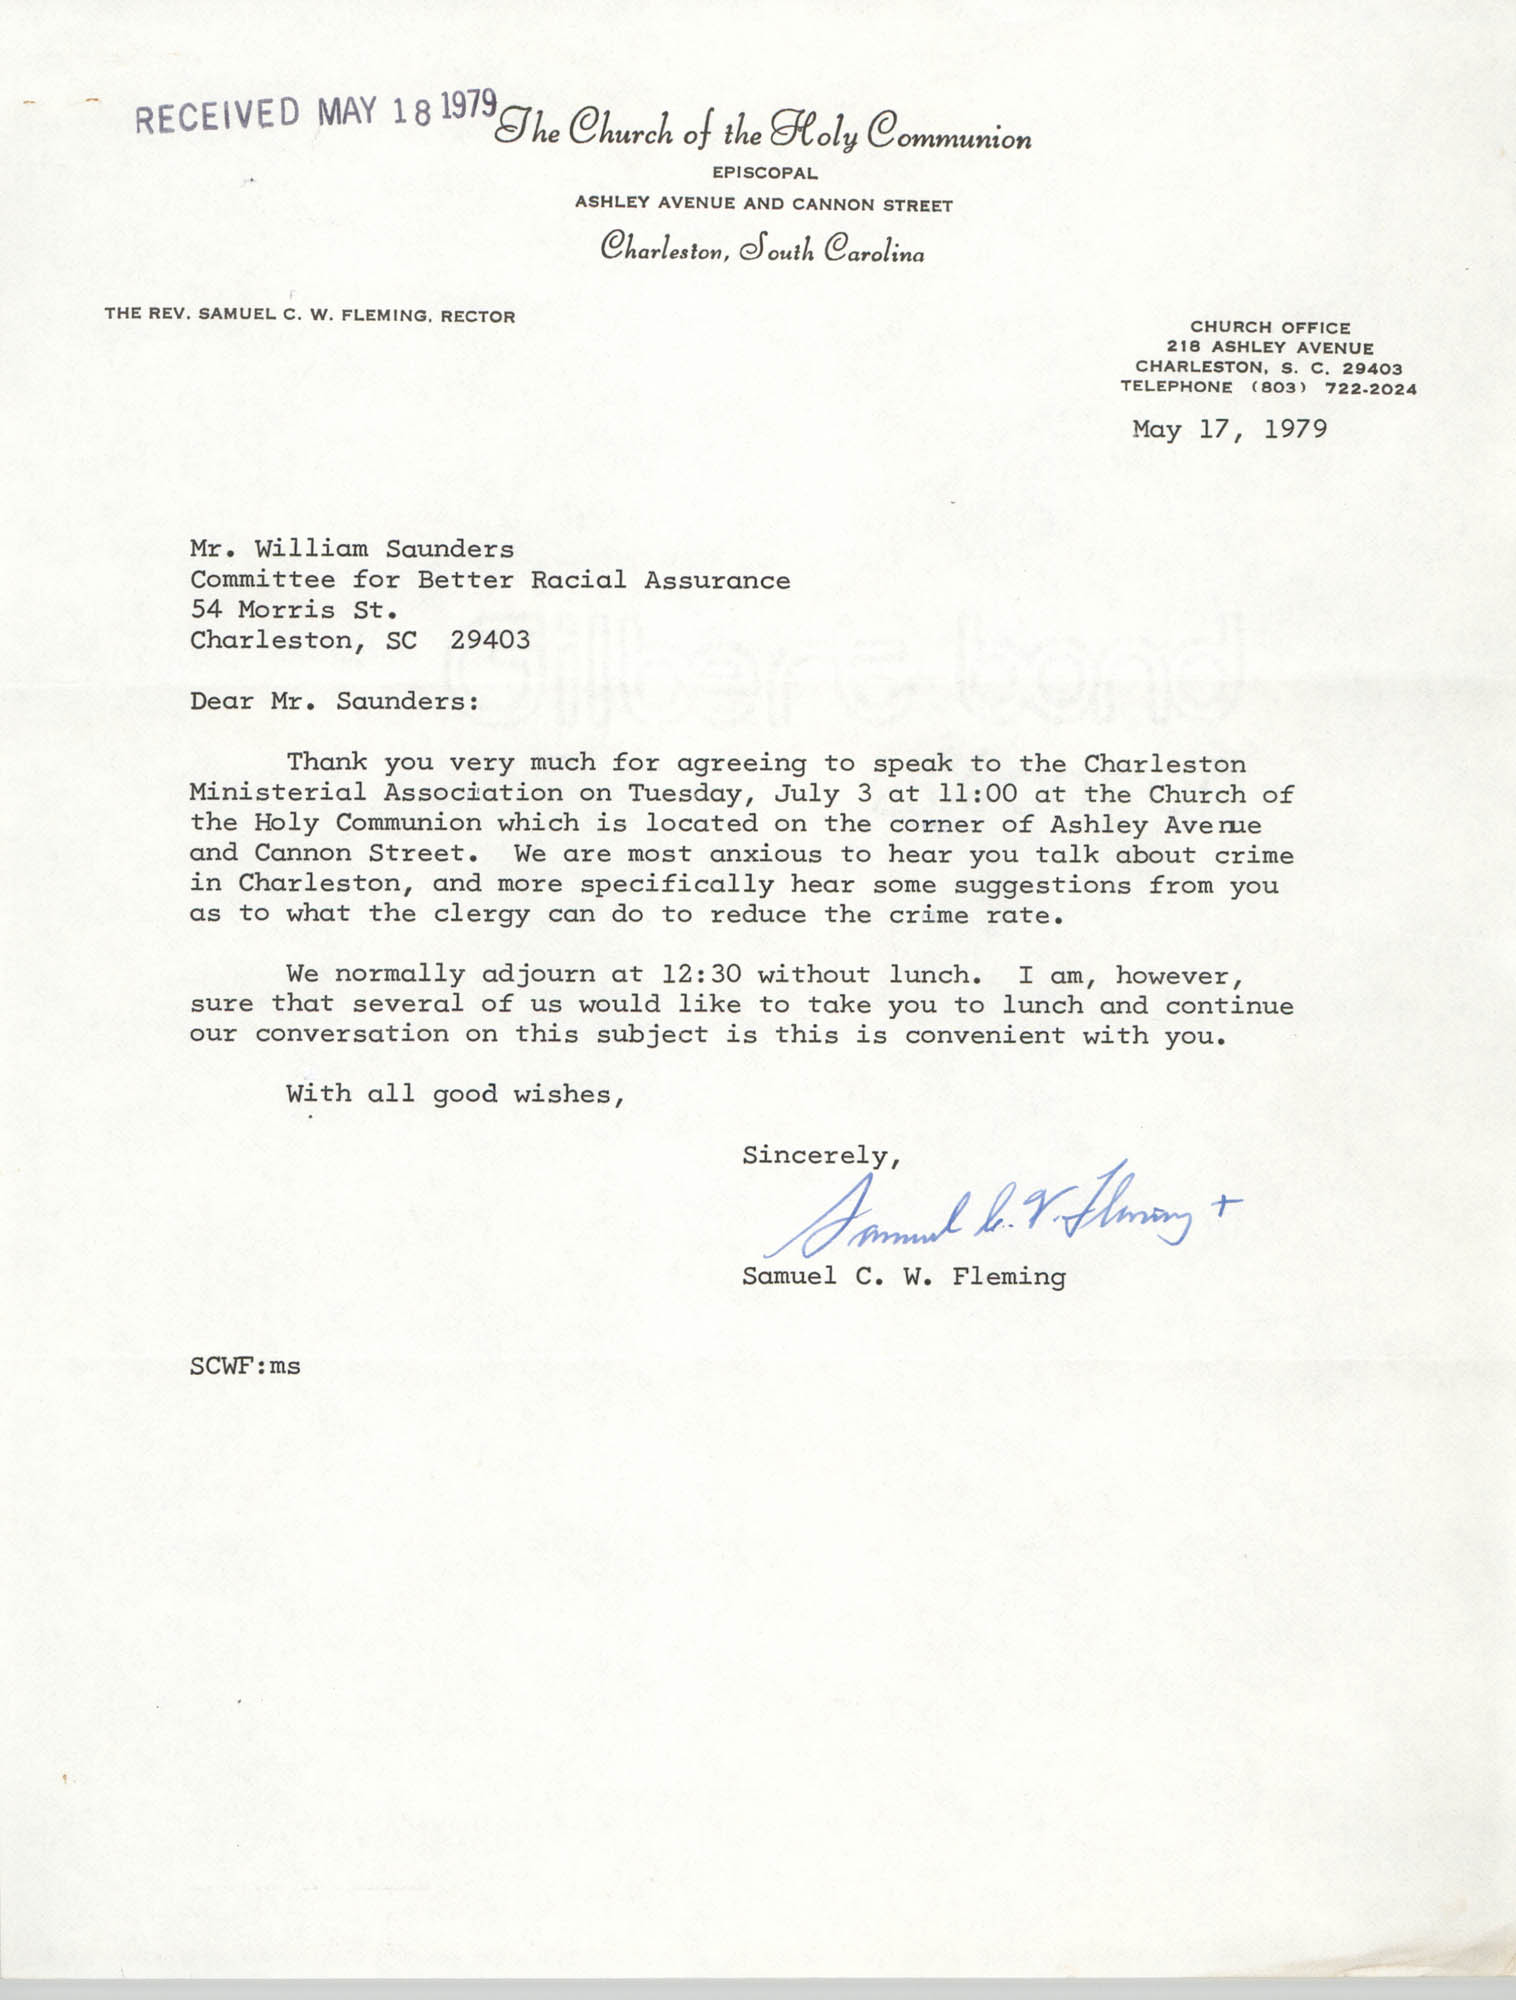 Letter from Samuel C. W. Fleming to William Saunders, May 17, 1979